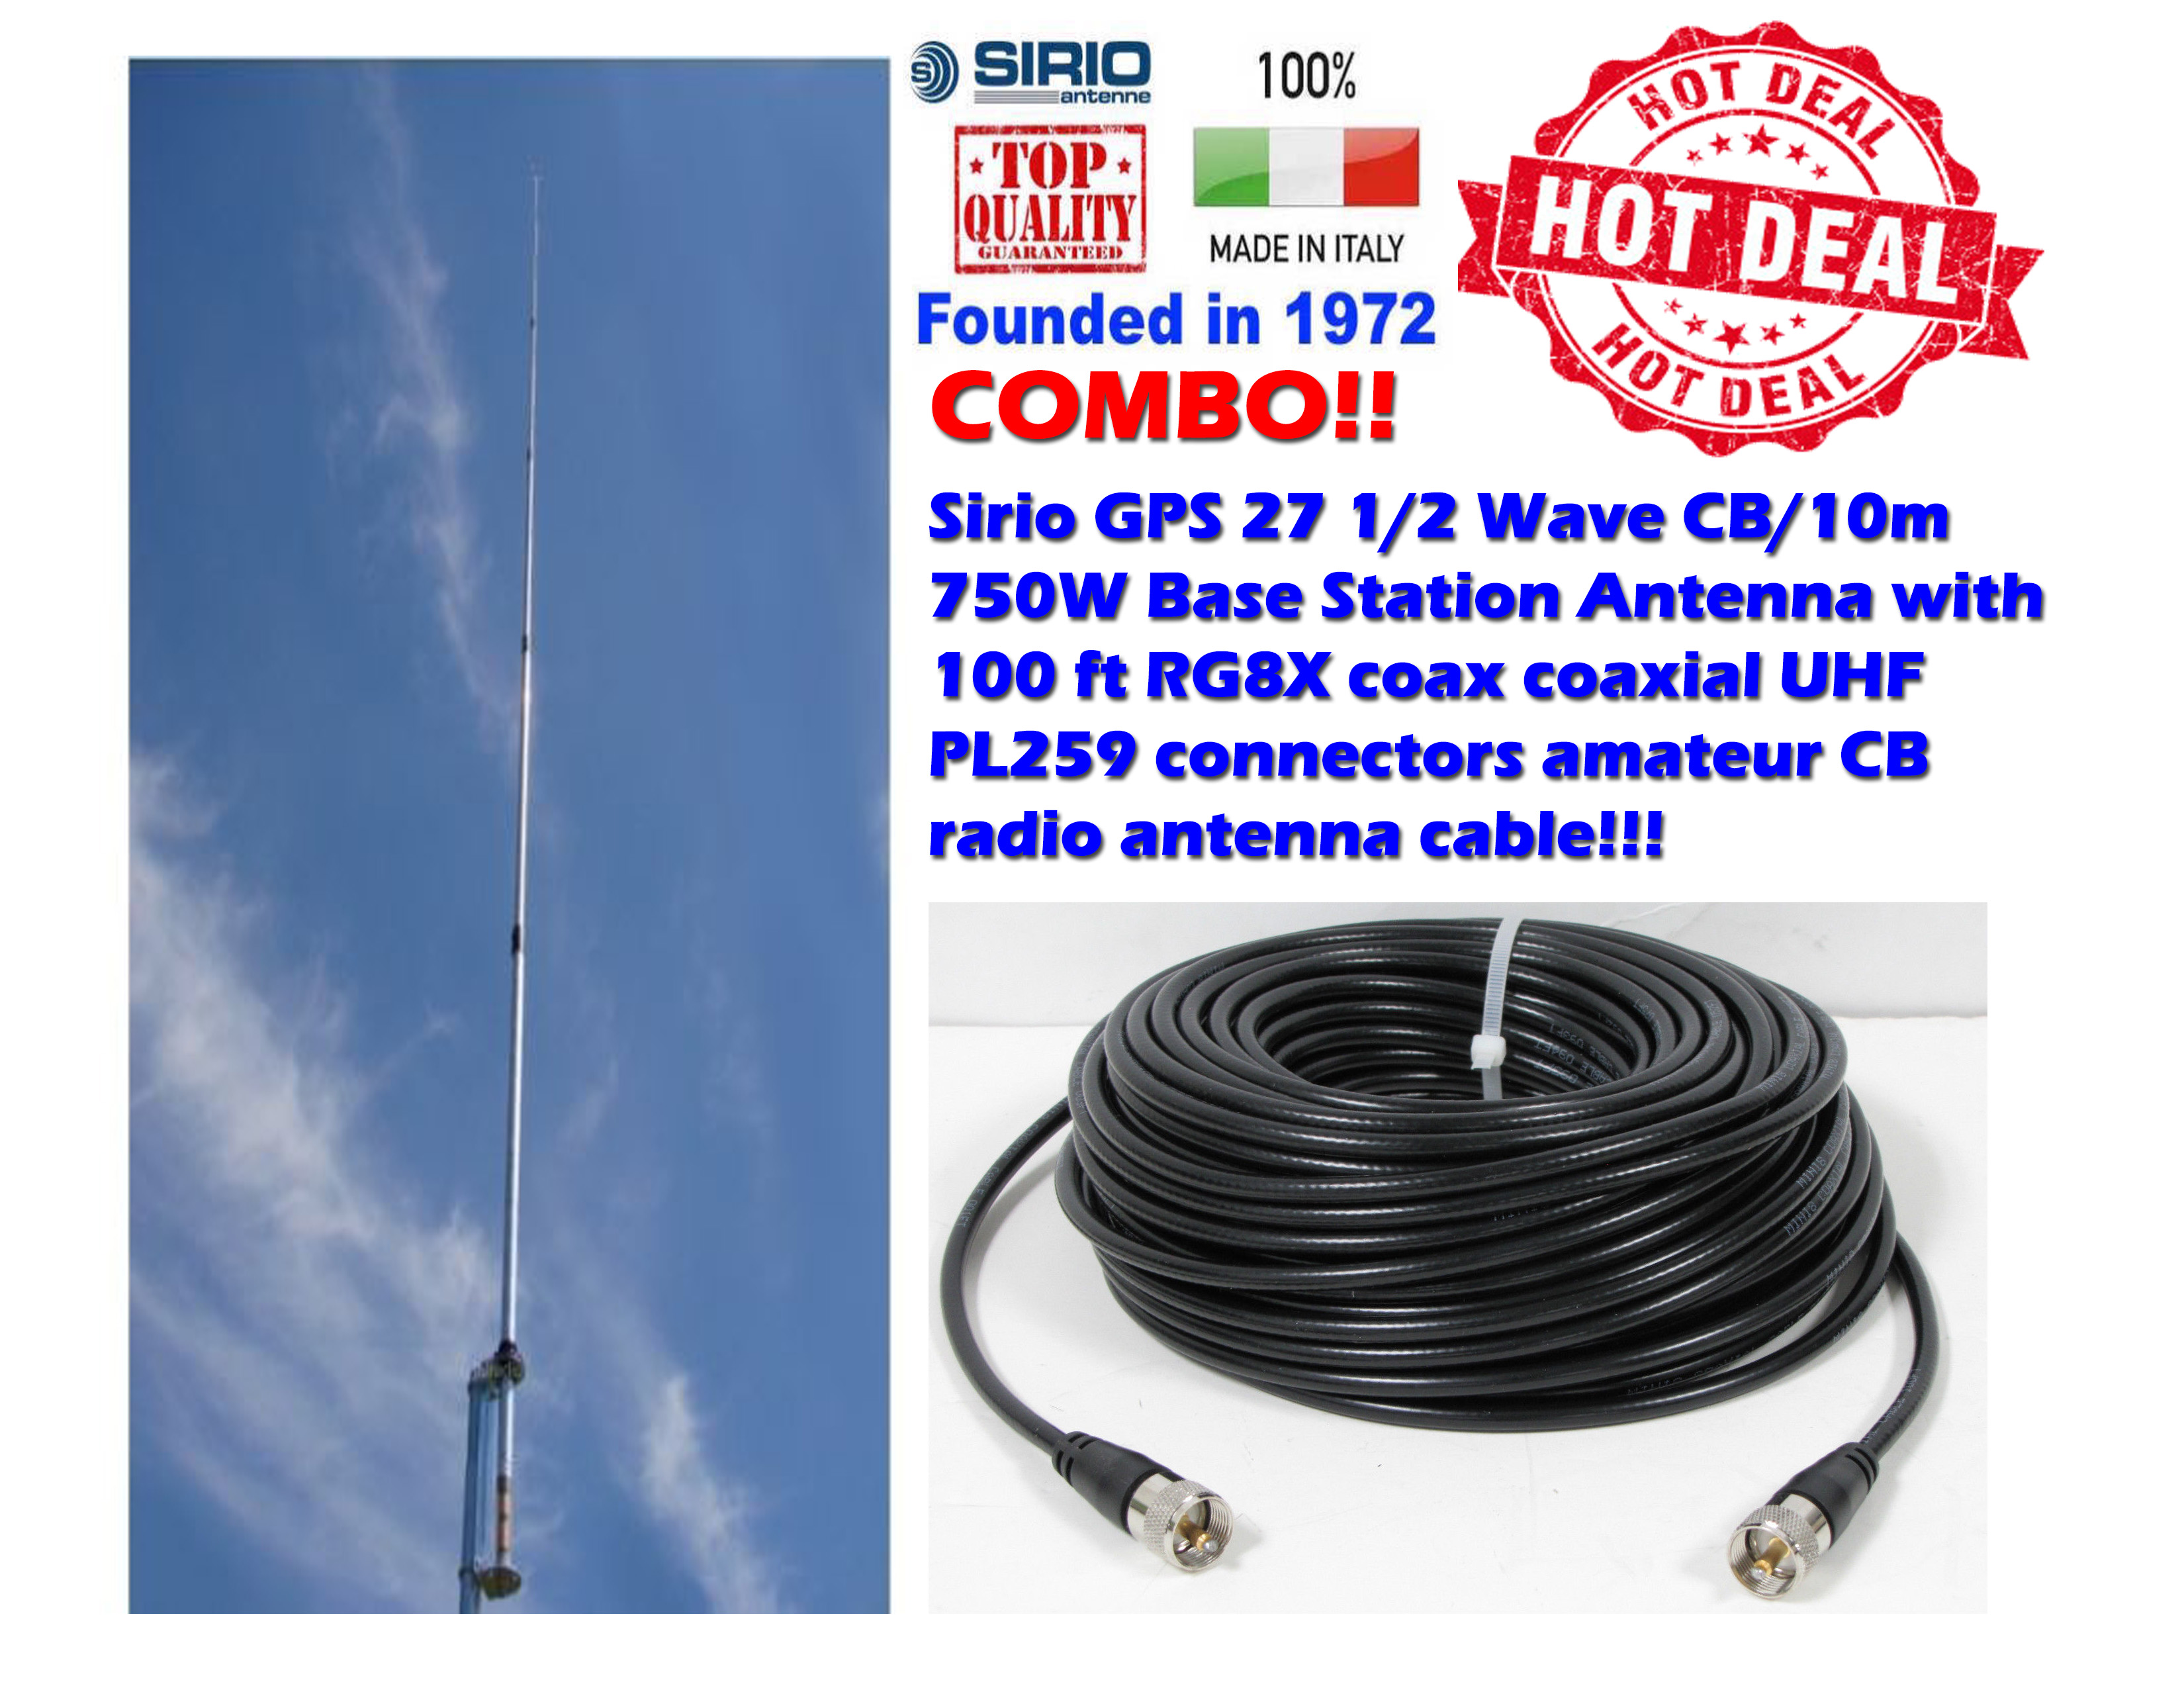 Sirio GPS 27 1/2 Wave CB/10m Base Station Antenna 100 Ft Coax